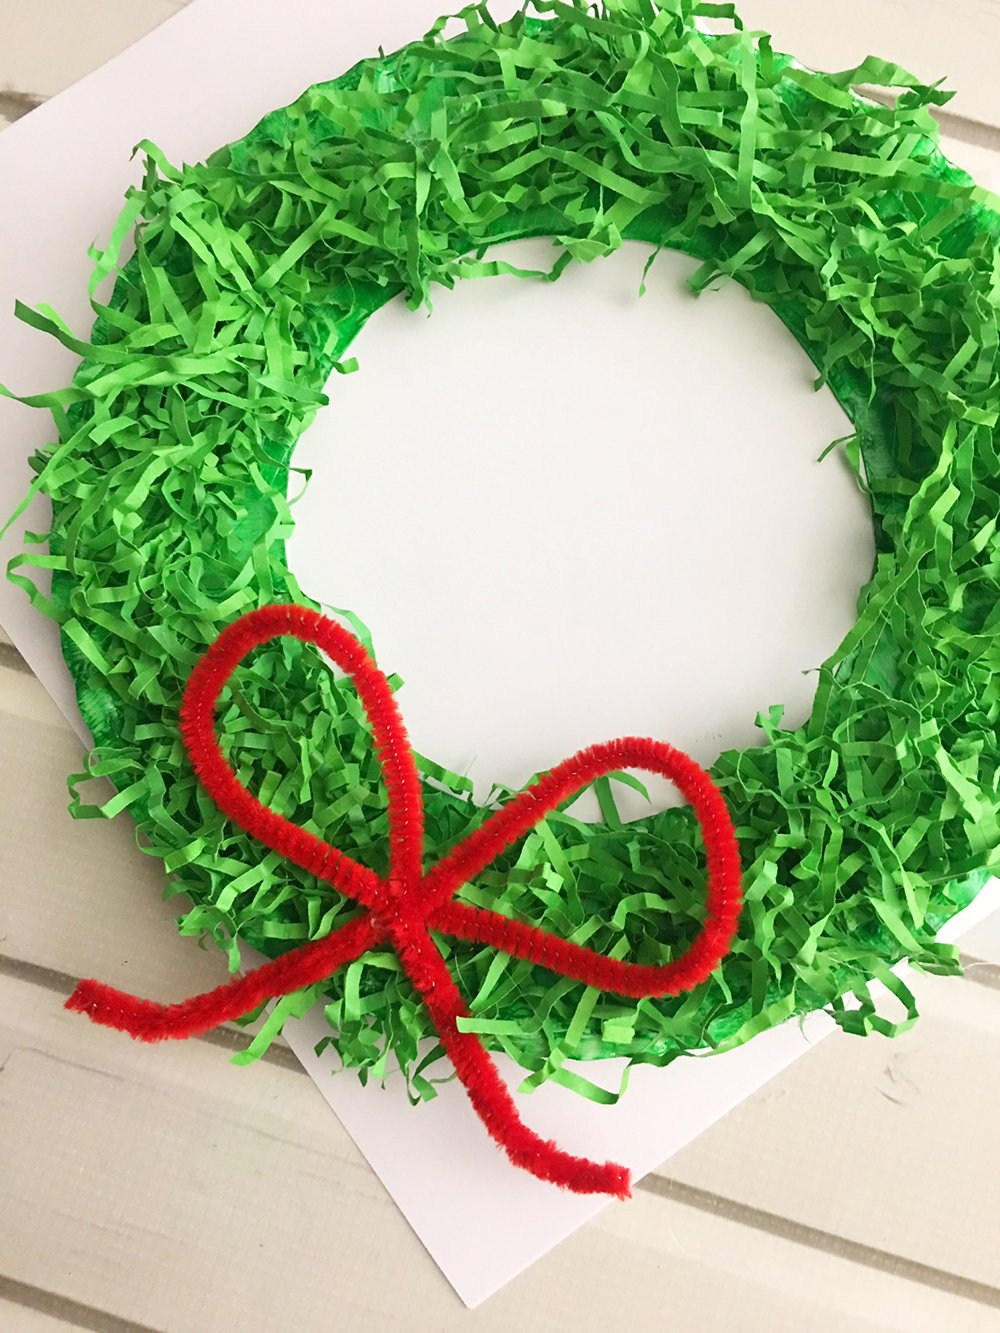 DIY Paper Christmas Wreath made with paper plate and shredded crinkle paper adds a festive touch to your holiday decor-Glue the pipe cleaner bow to the bottom center of the paper wreath.